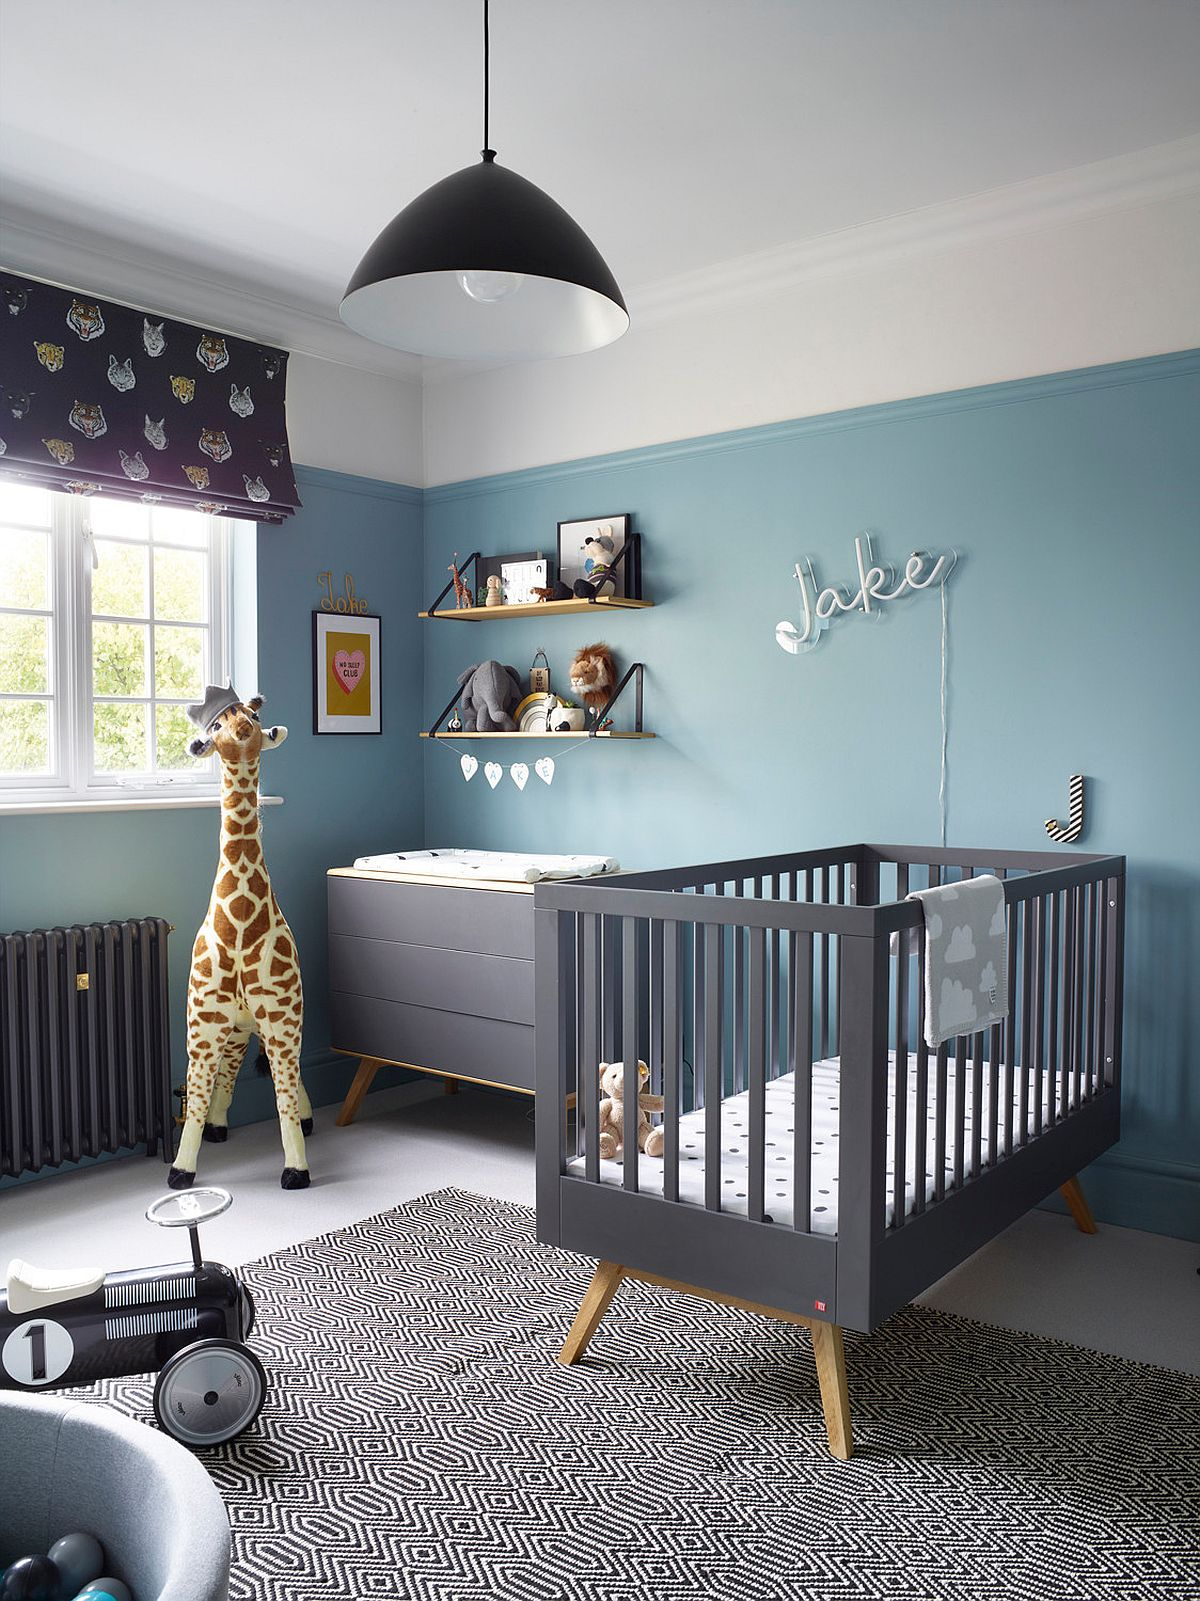 Smart contemporary nursery in white and light blue with gray crib